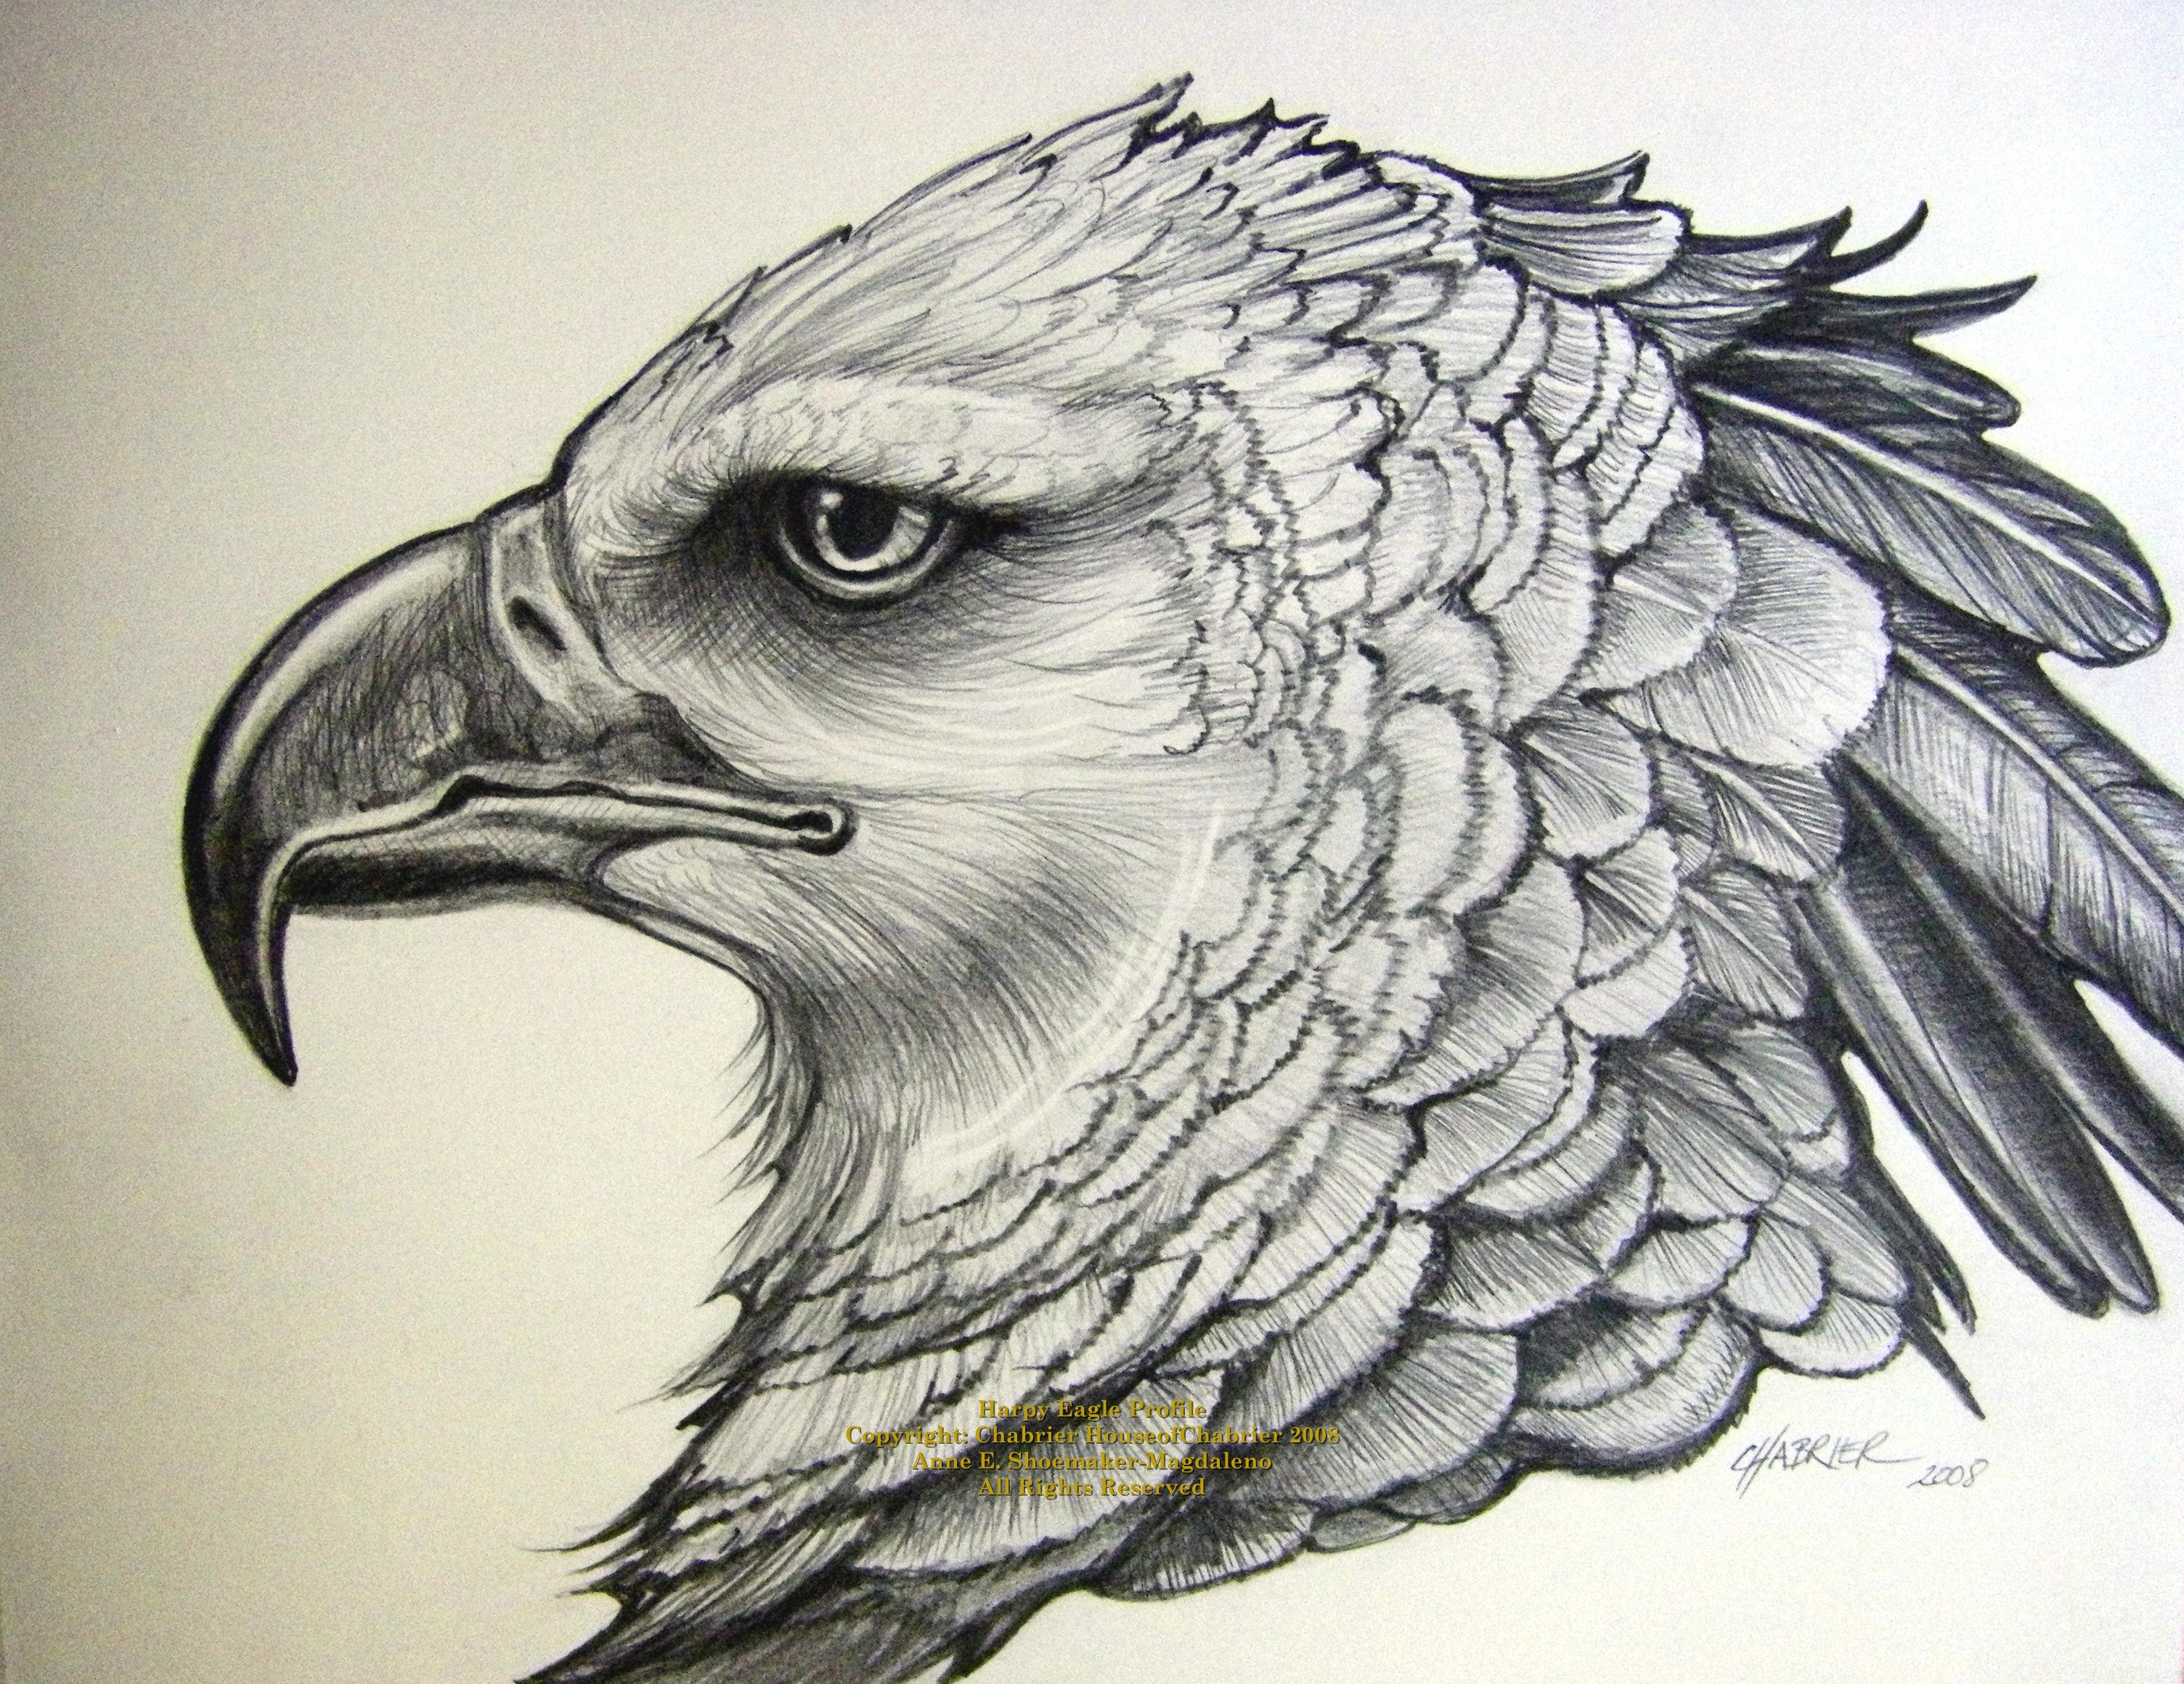 3008x2320 Eagle Flying Pencil Sketch Pencil Drawings Of Eagles In Flight 9